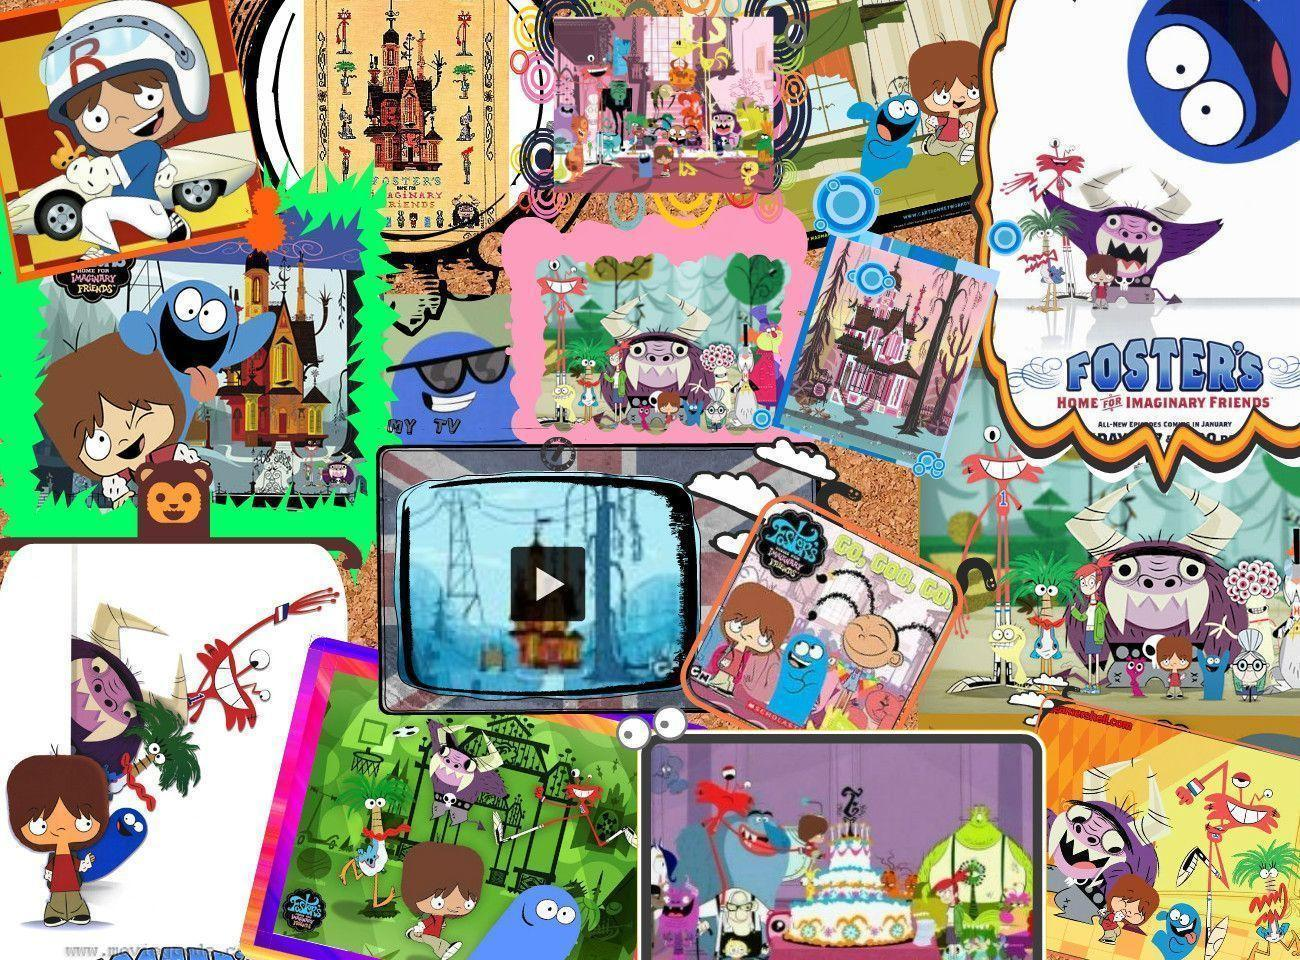 Free Download Fosters Home For Imaginary Friends Wallpapers